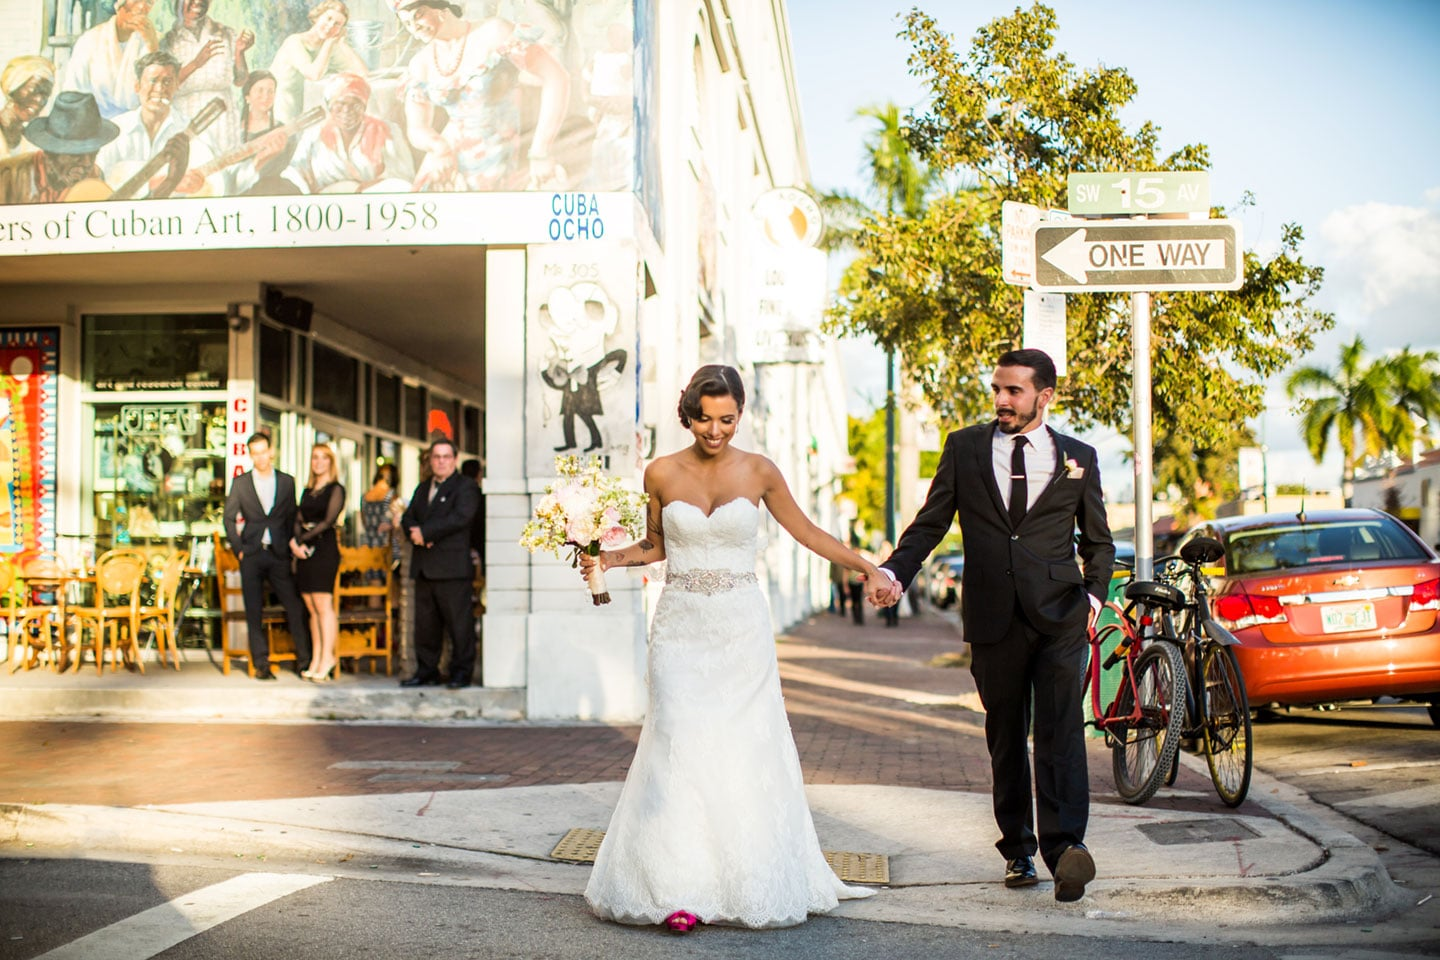 32-Miami-Little-Havana-wedding-photography